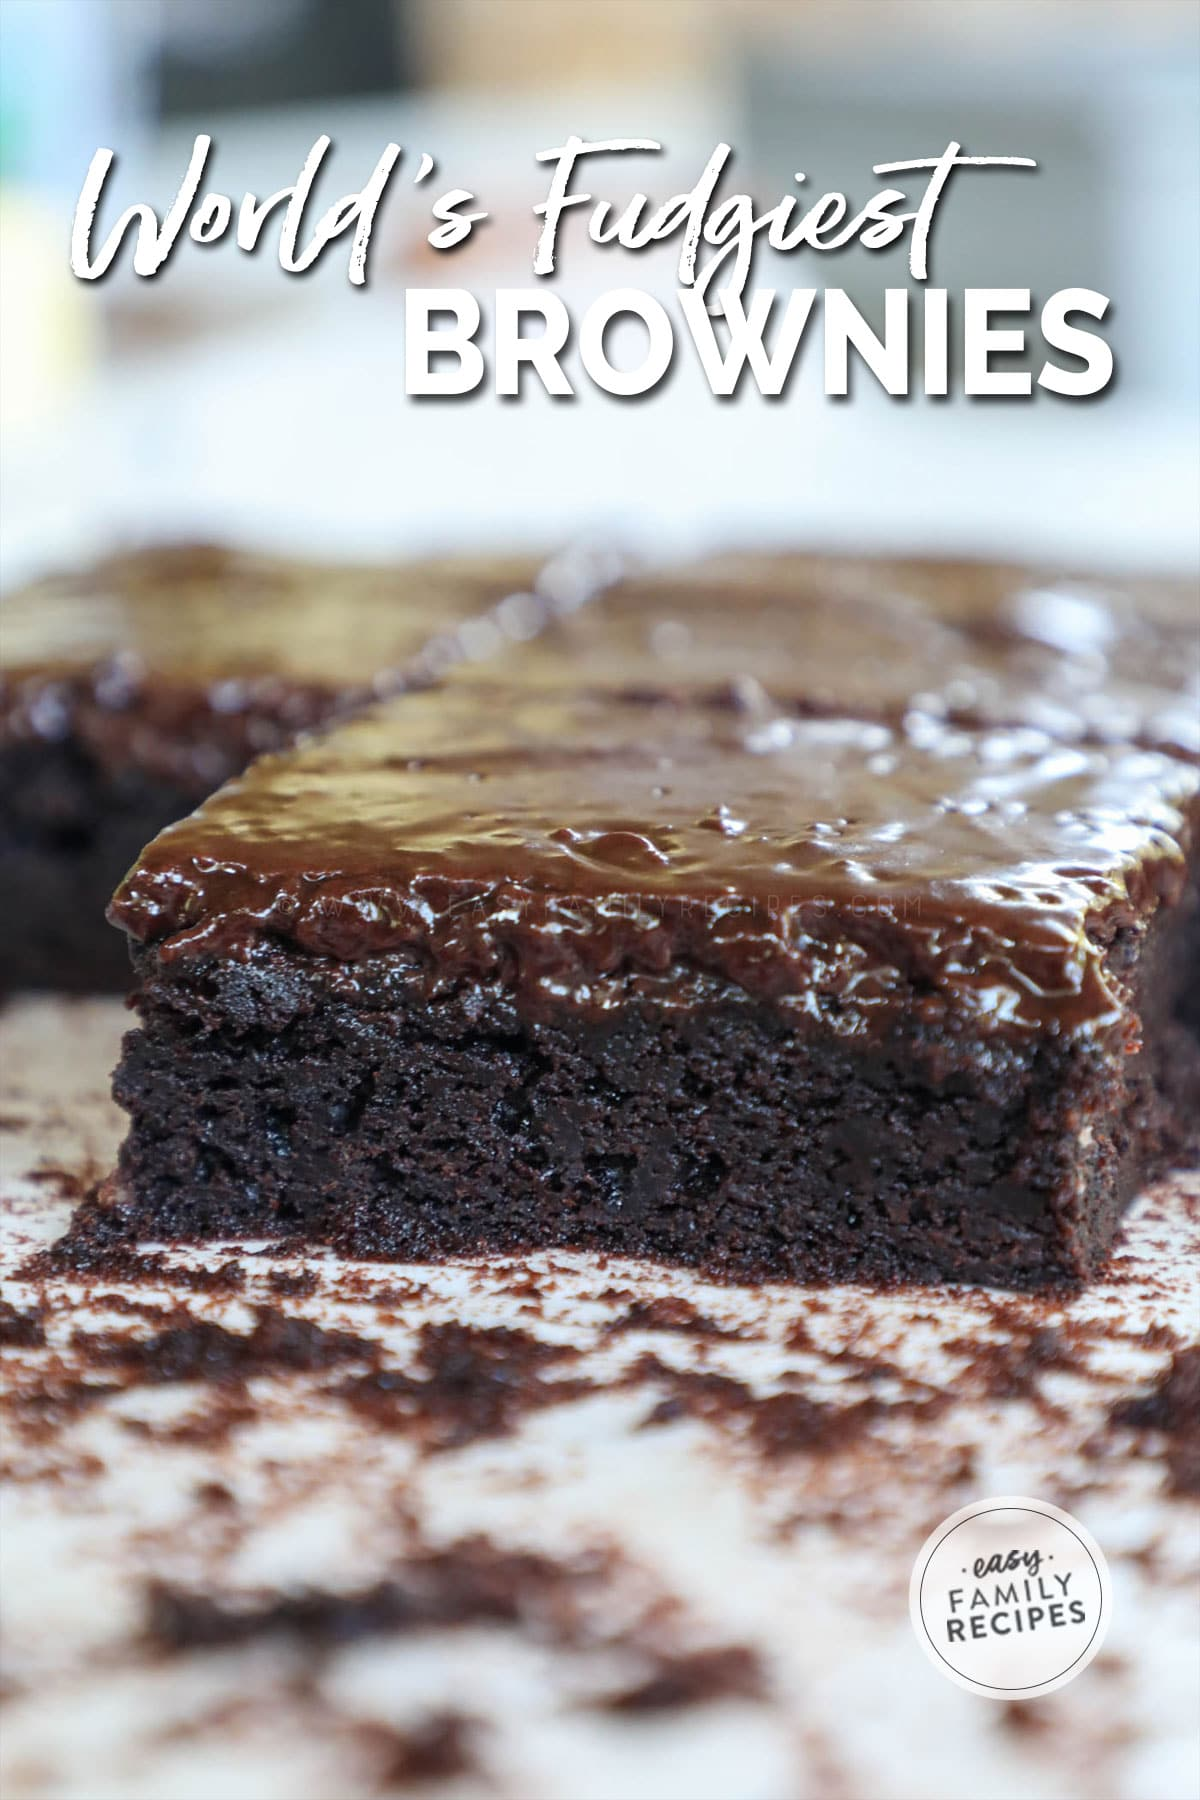 Frosted Fudge brownie ready to eat